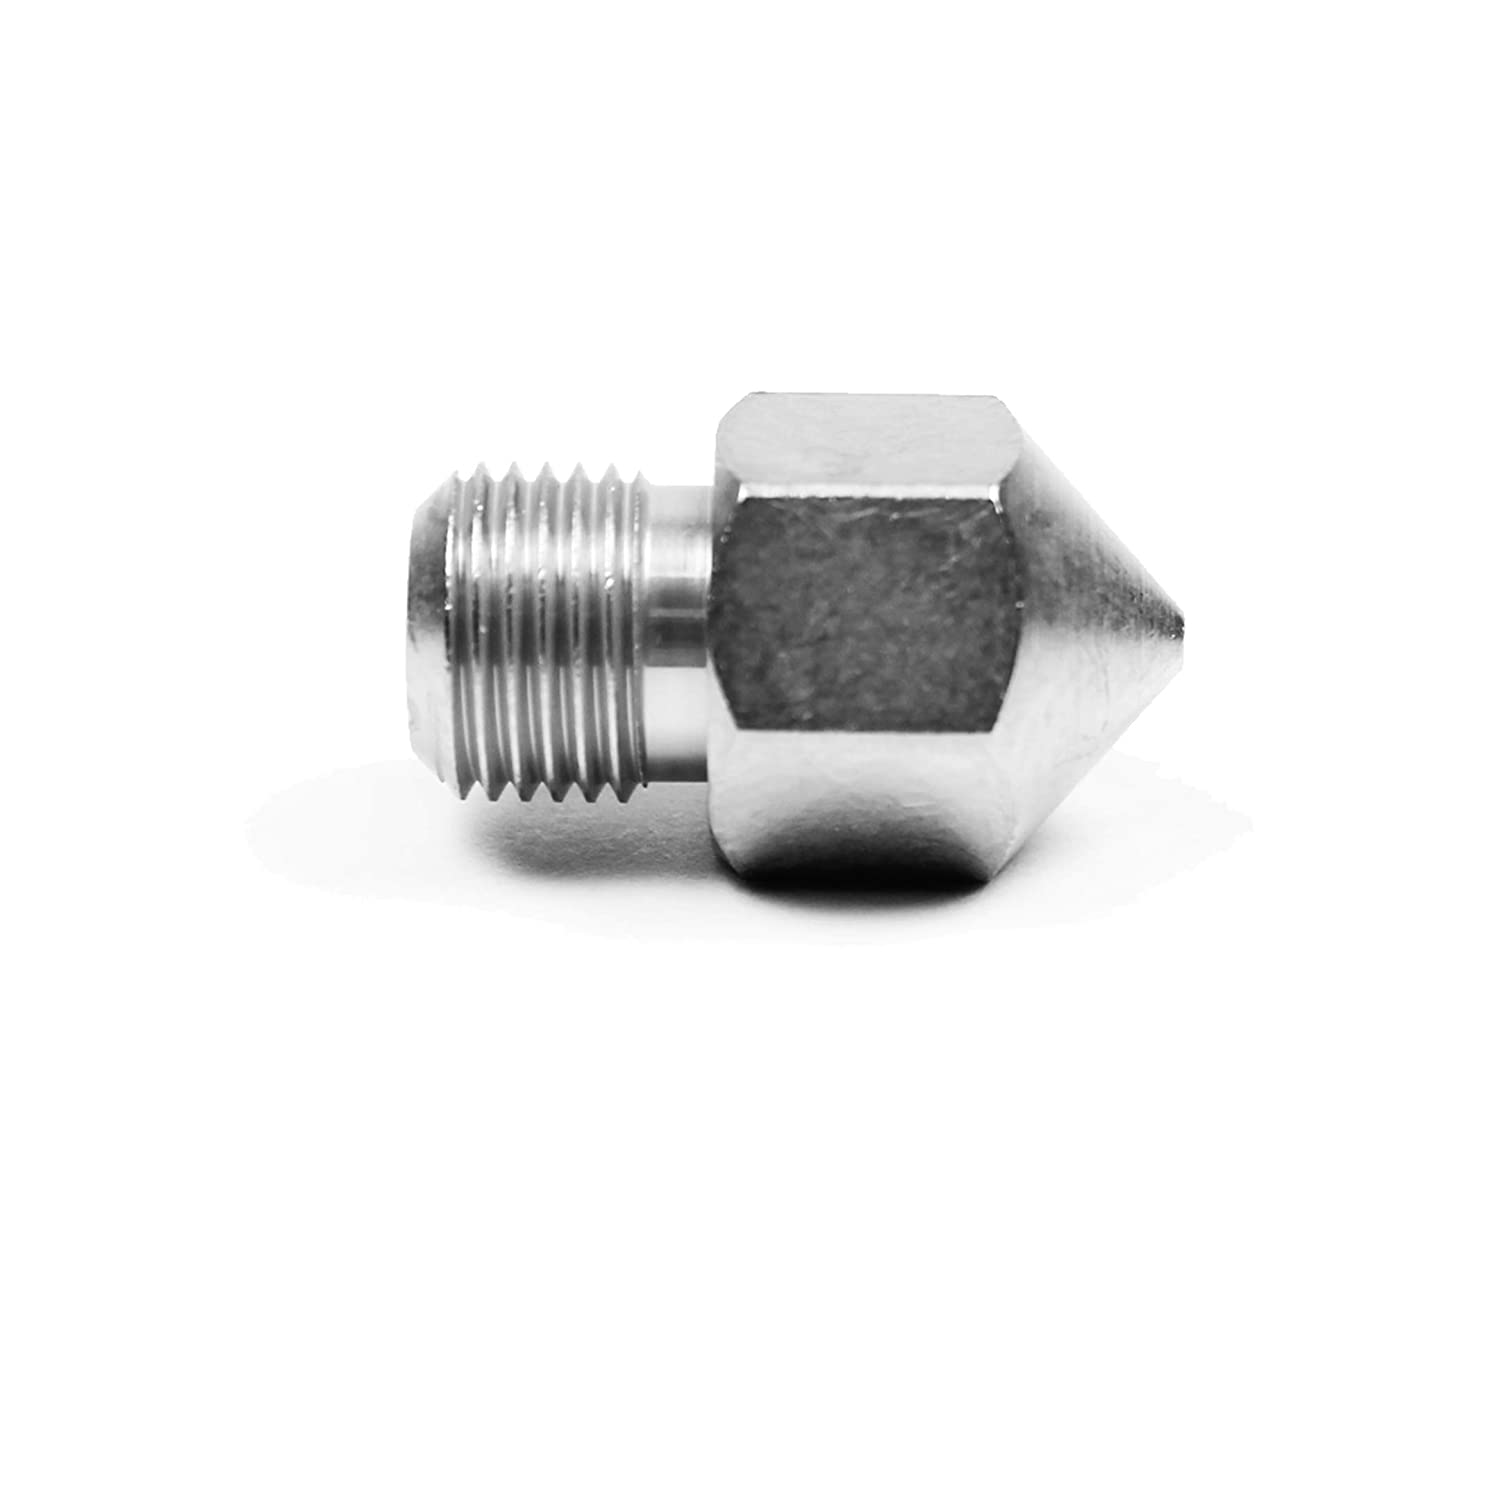 Amazon.com: Micro Swiss Plated Wear Resistant Nozzle for WANHAO Duplicator 5 Series .4mm: Industrial & Scientific